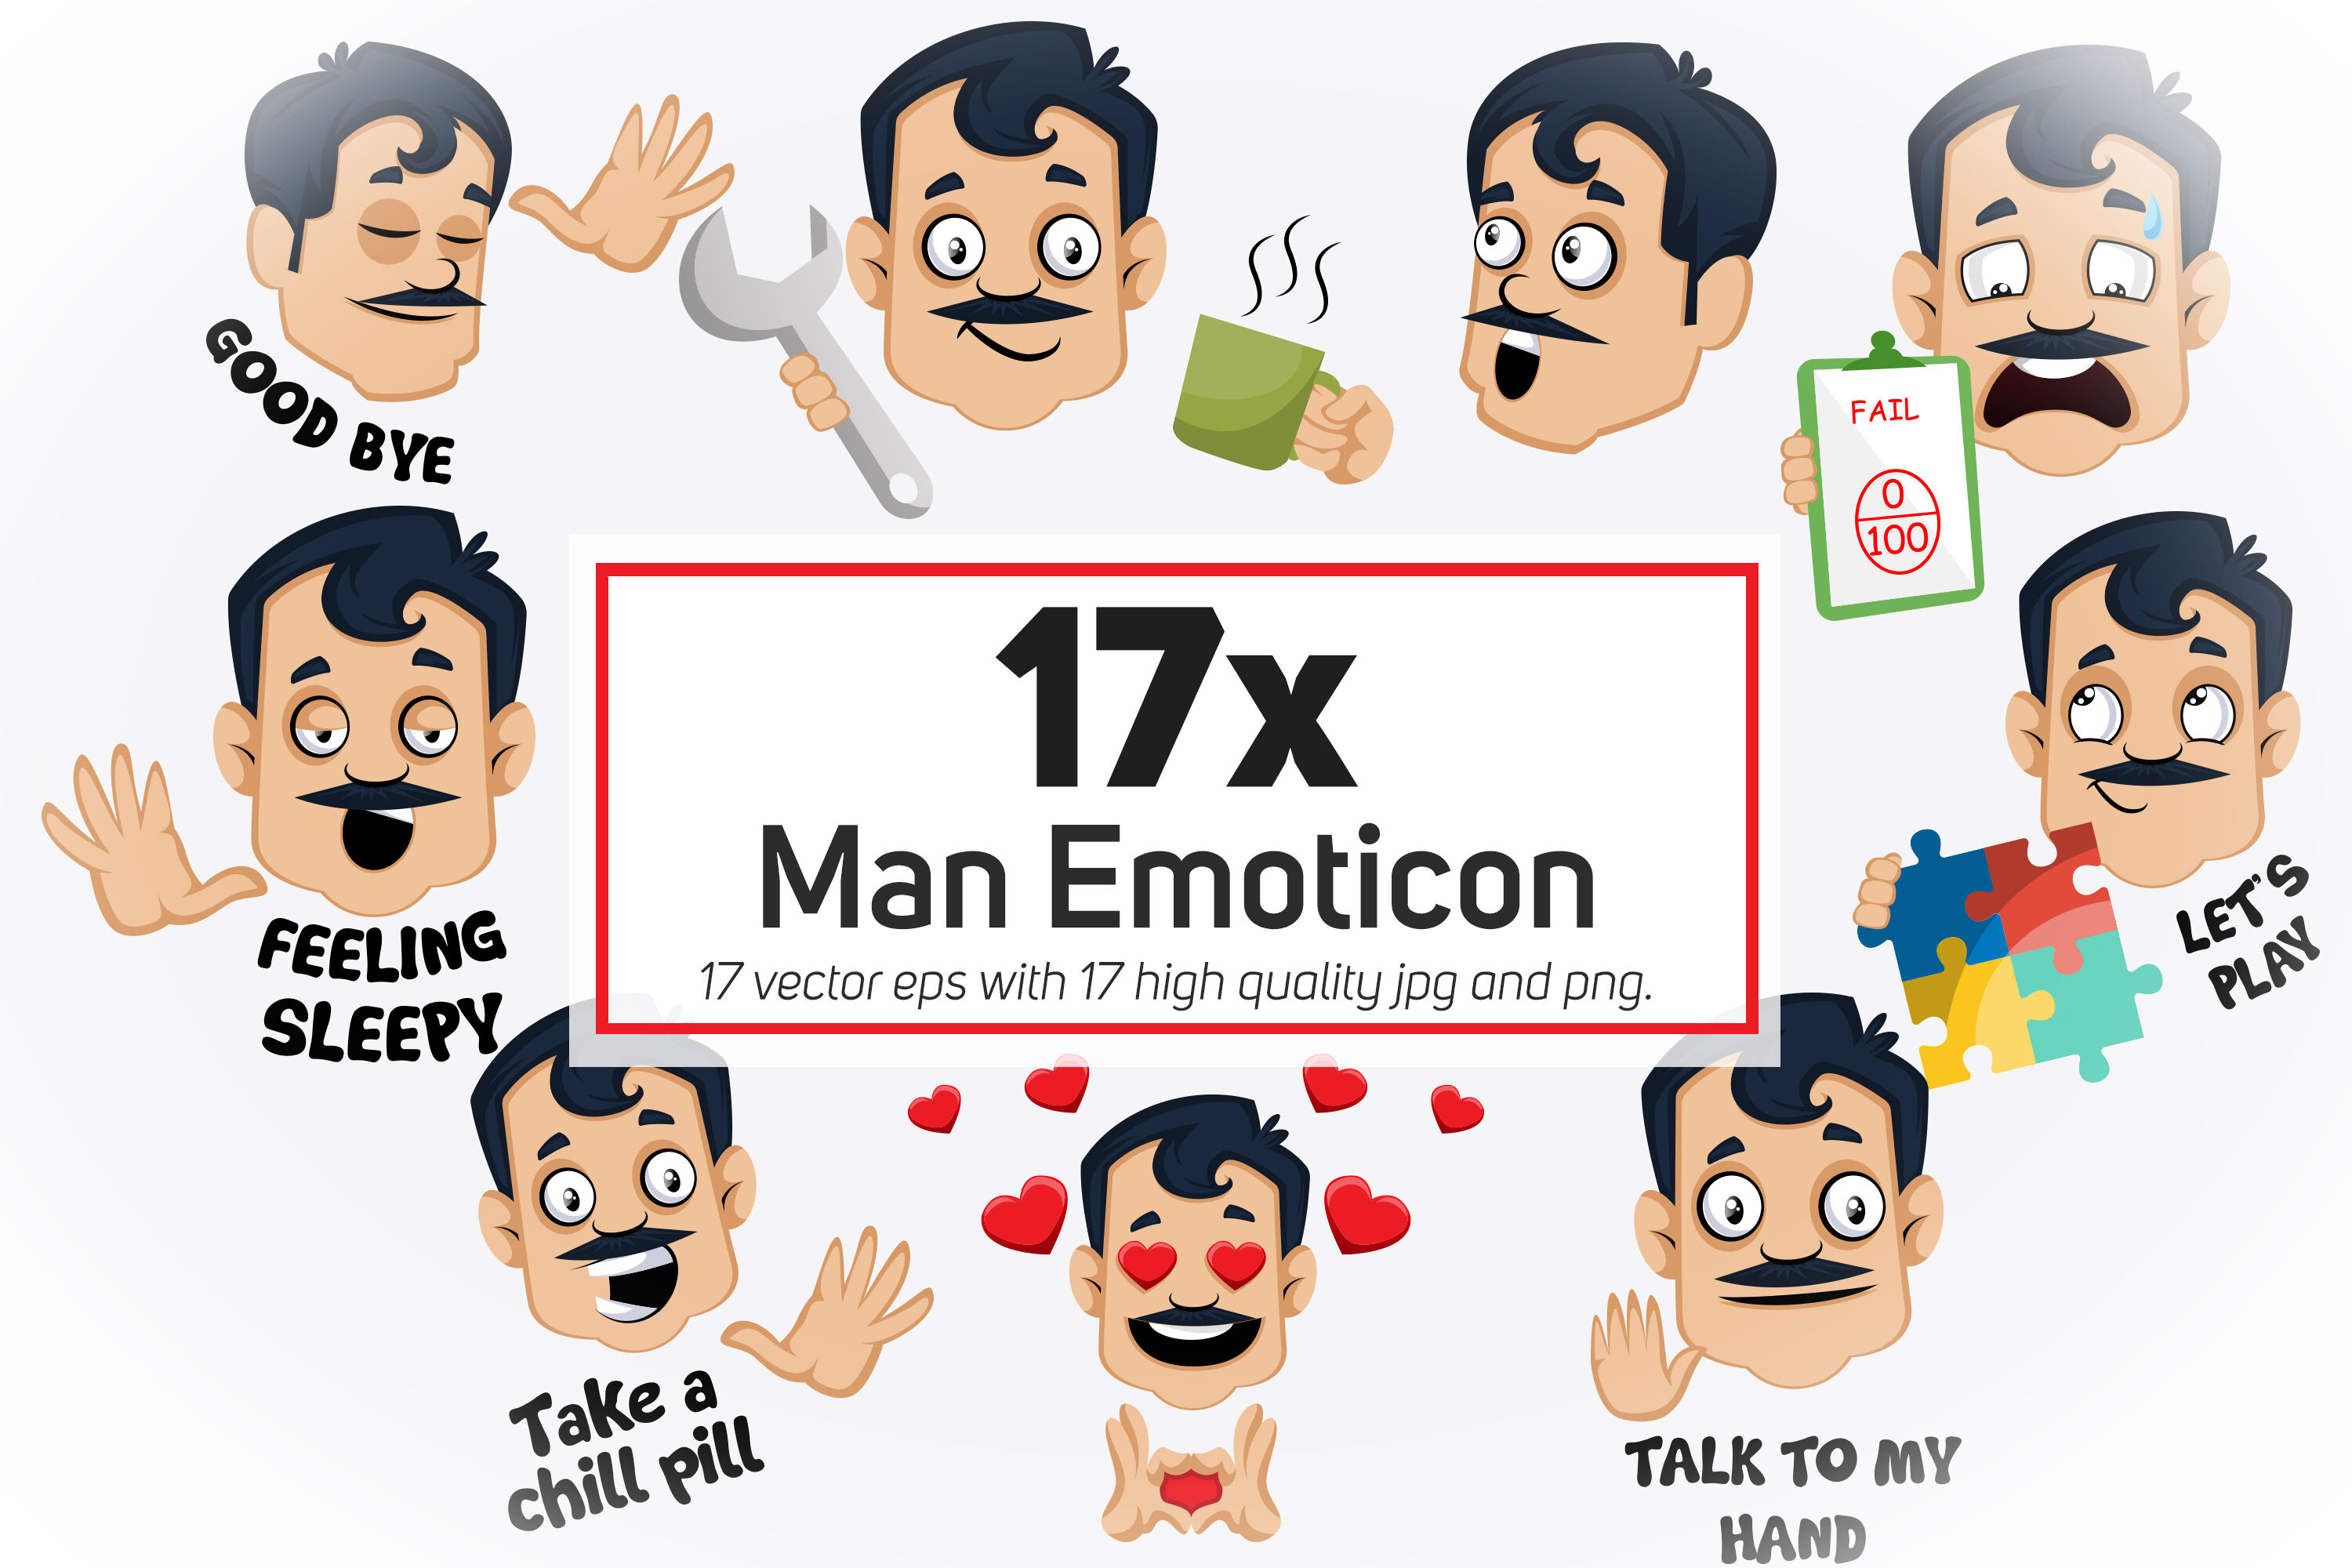 17x Man Emoticon Or Stickers Character Collection Illustration By